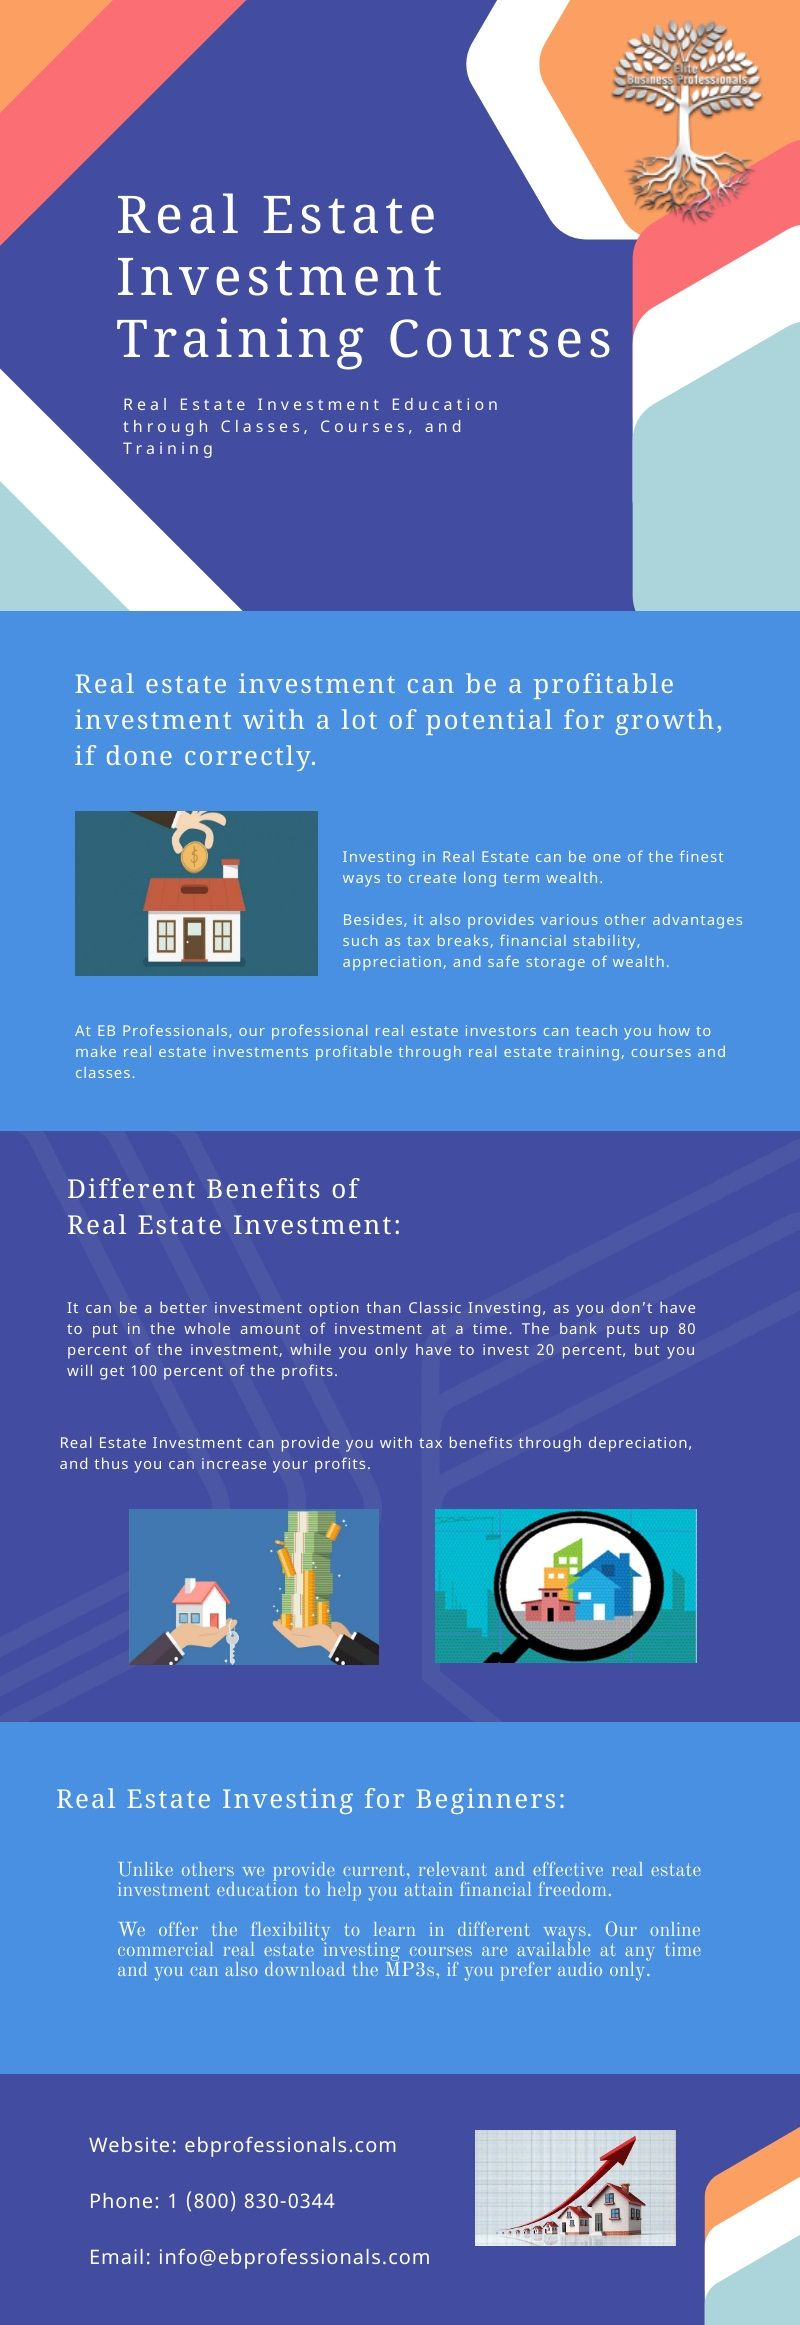 Learn Real Estate Investment Training Courses Online Real Estate Investing Investing Commercial Real Estate Investing